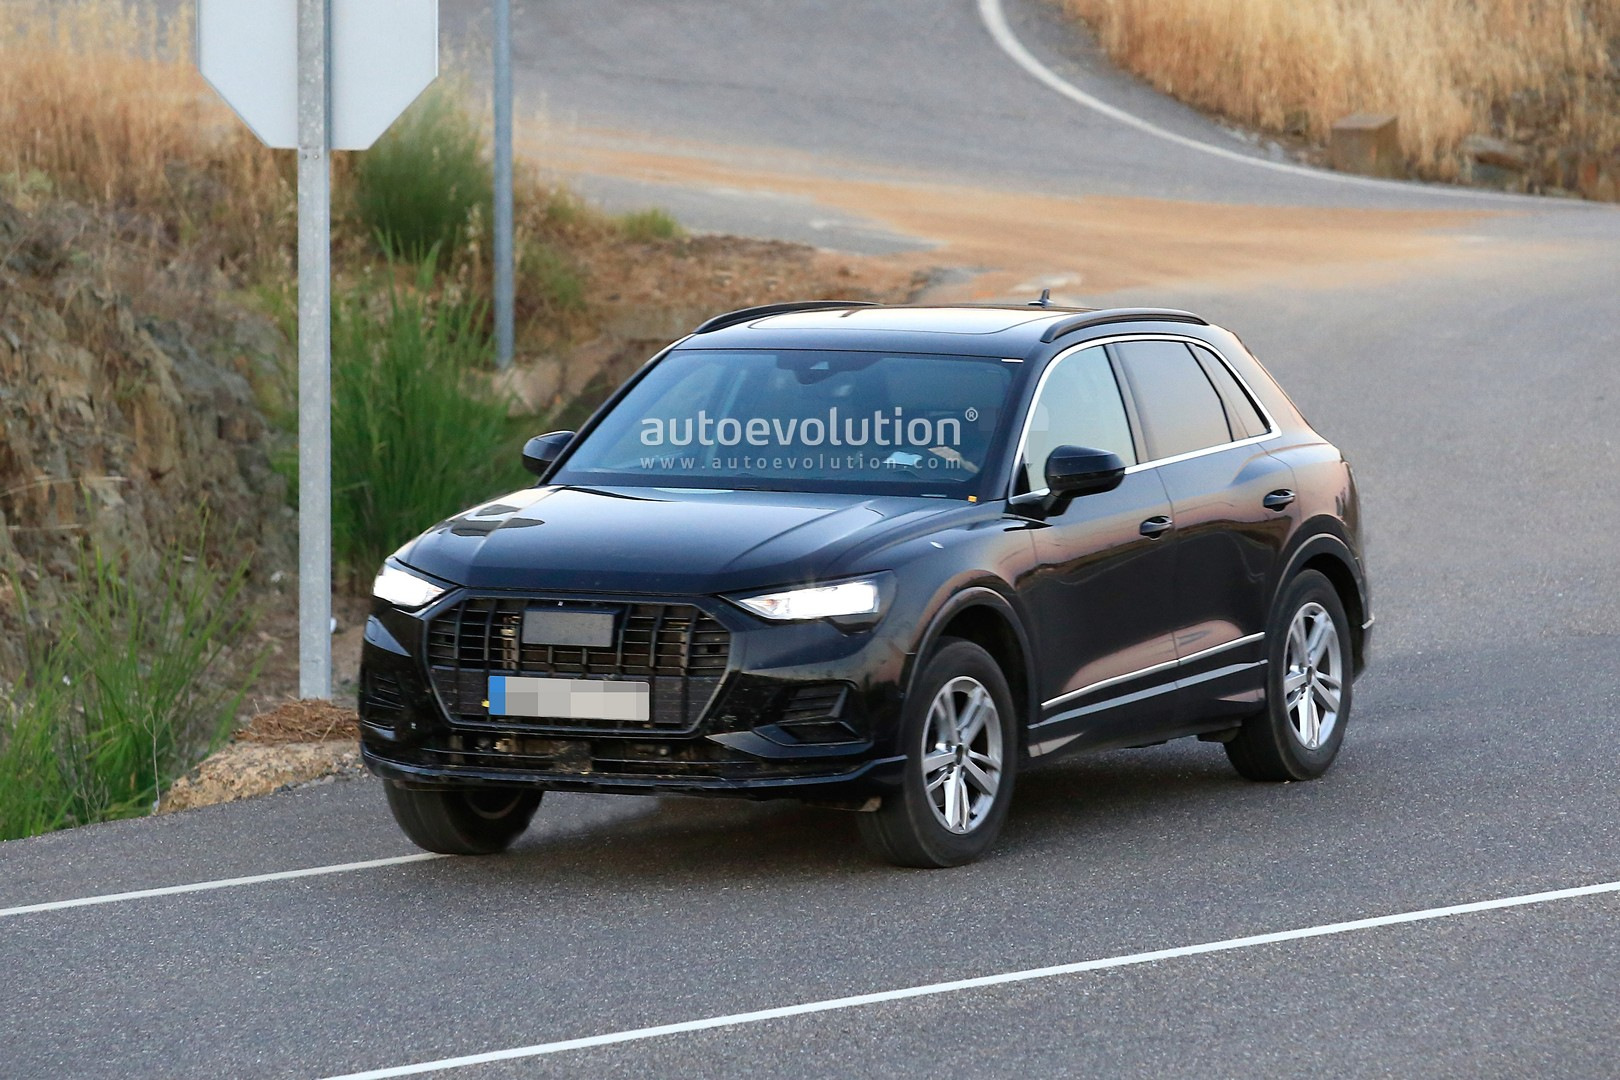 New Audi Q3 2019 >> Spyshots: 2019 Audi Q3 Caught Undisguised, Looks Like a Mini Q8 - autoevolution